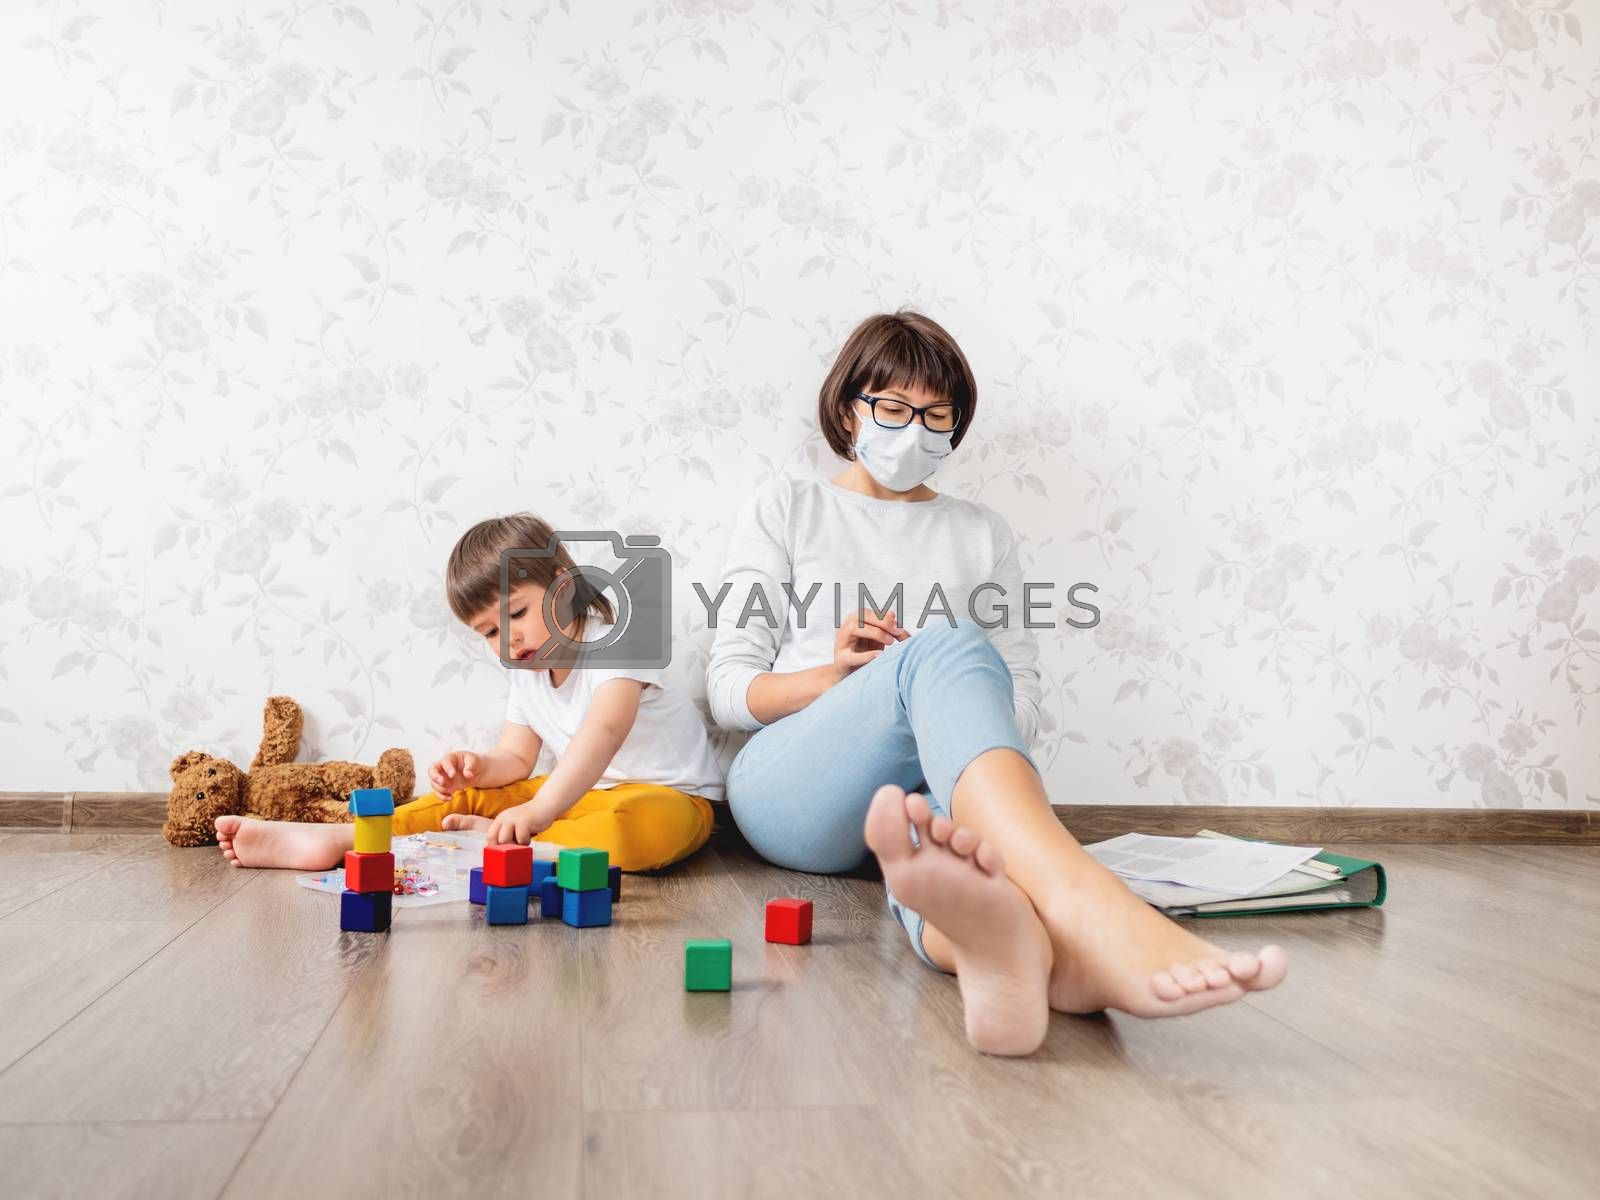 Mom and son at home quarantine because of coronavirus COVID19. Mother works remotely with laptop, son plays with toy blocks. Self isolation at home.